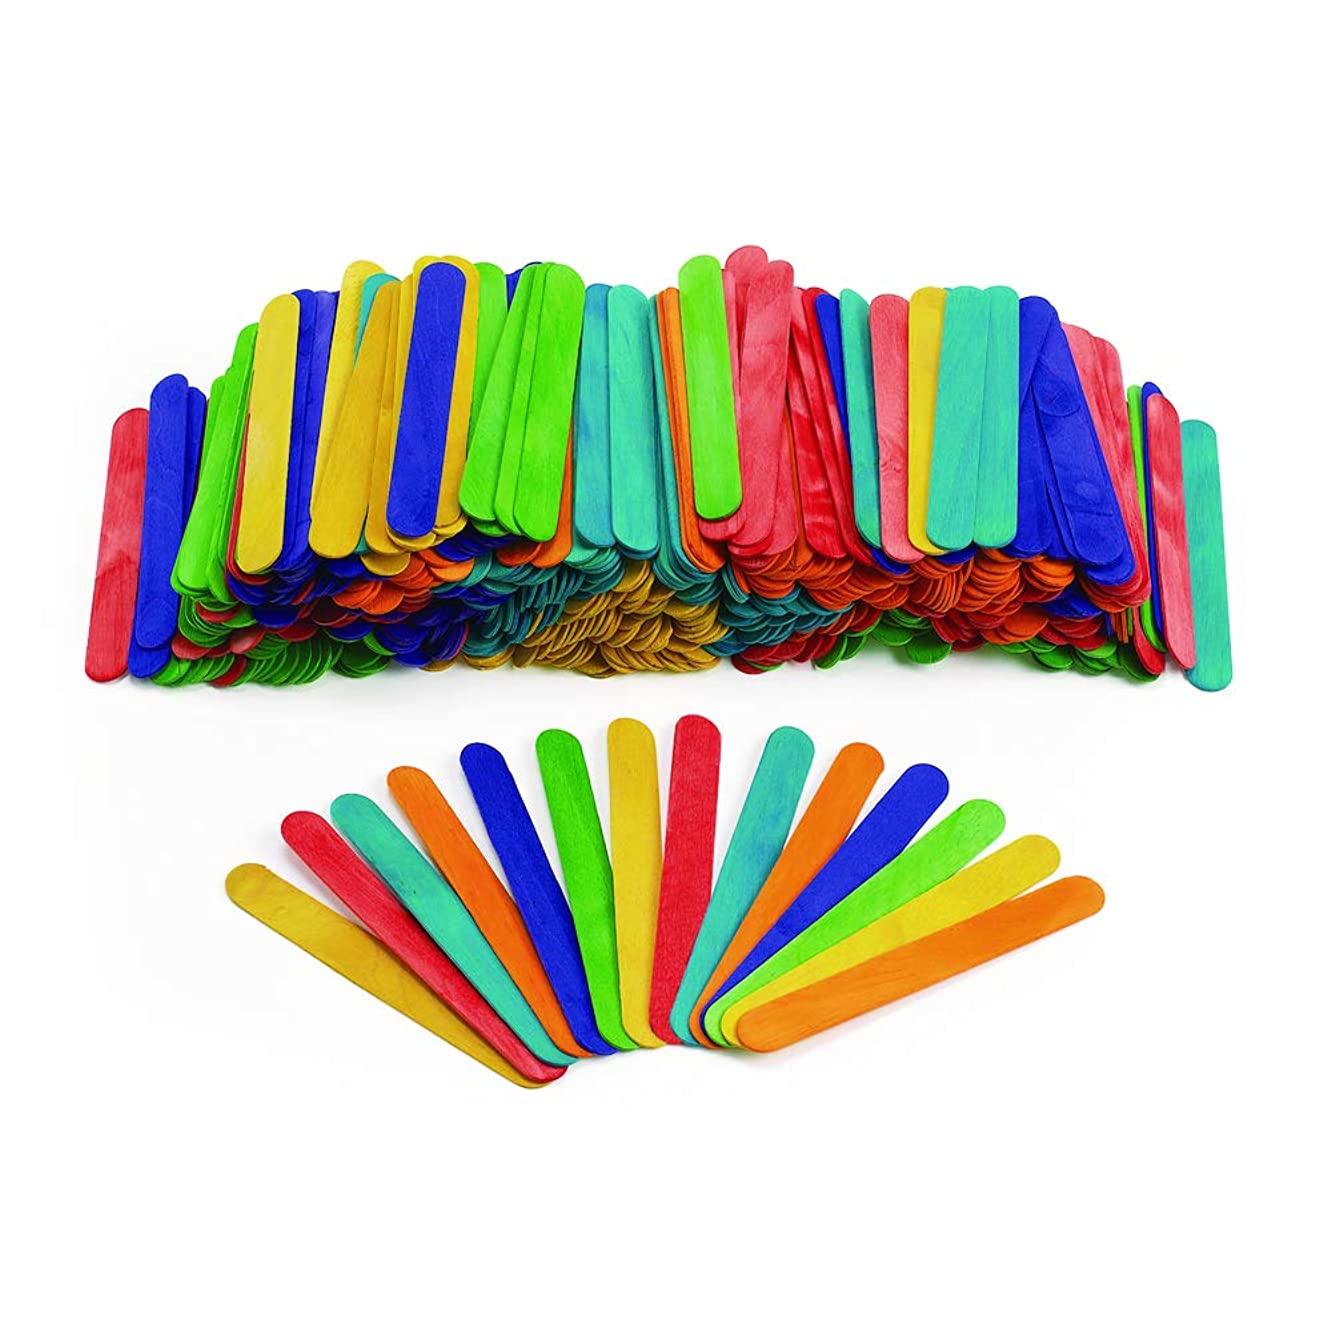 Colorations Large Colored Wood Craft Sticks Tongue Depressors, 500 Pieces, All Natural, 1mm Thick, 6